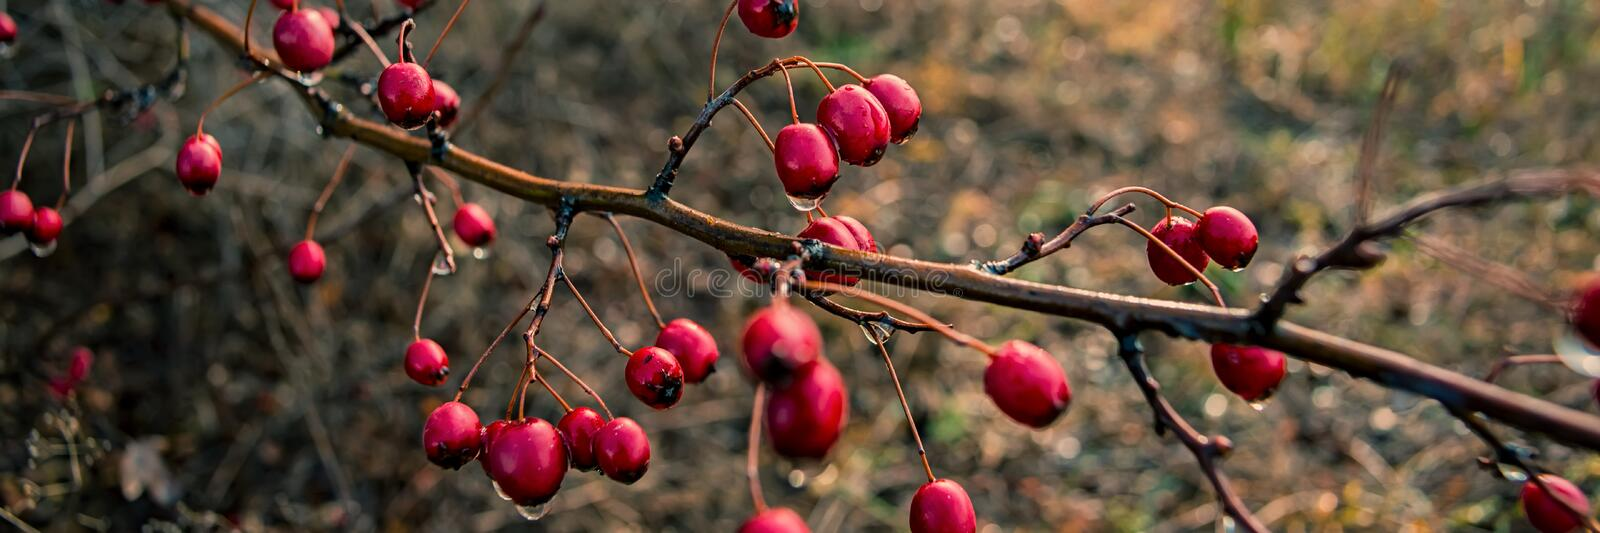 Branch with red hawthorn fruits. Banner for design stock images